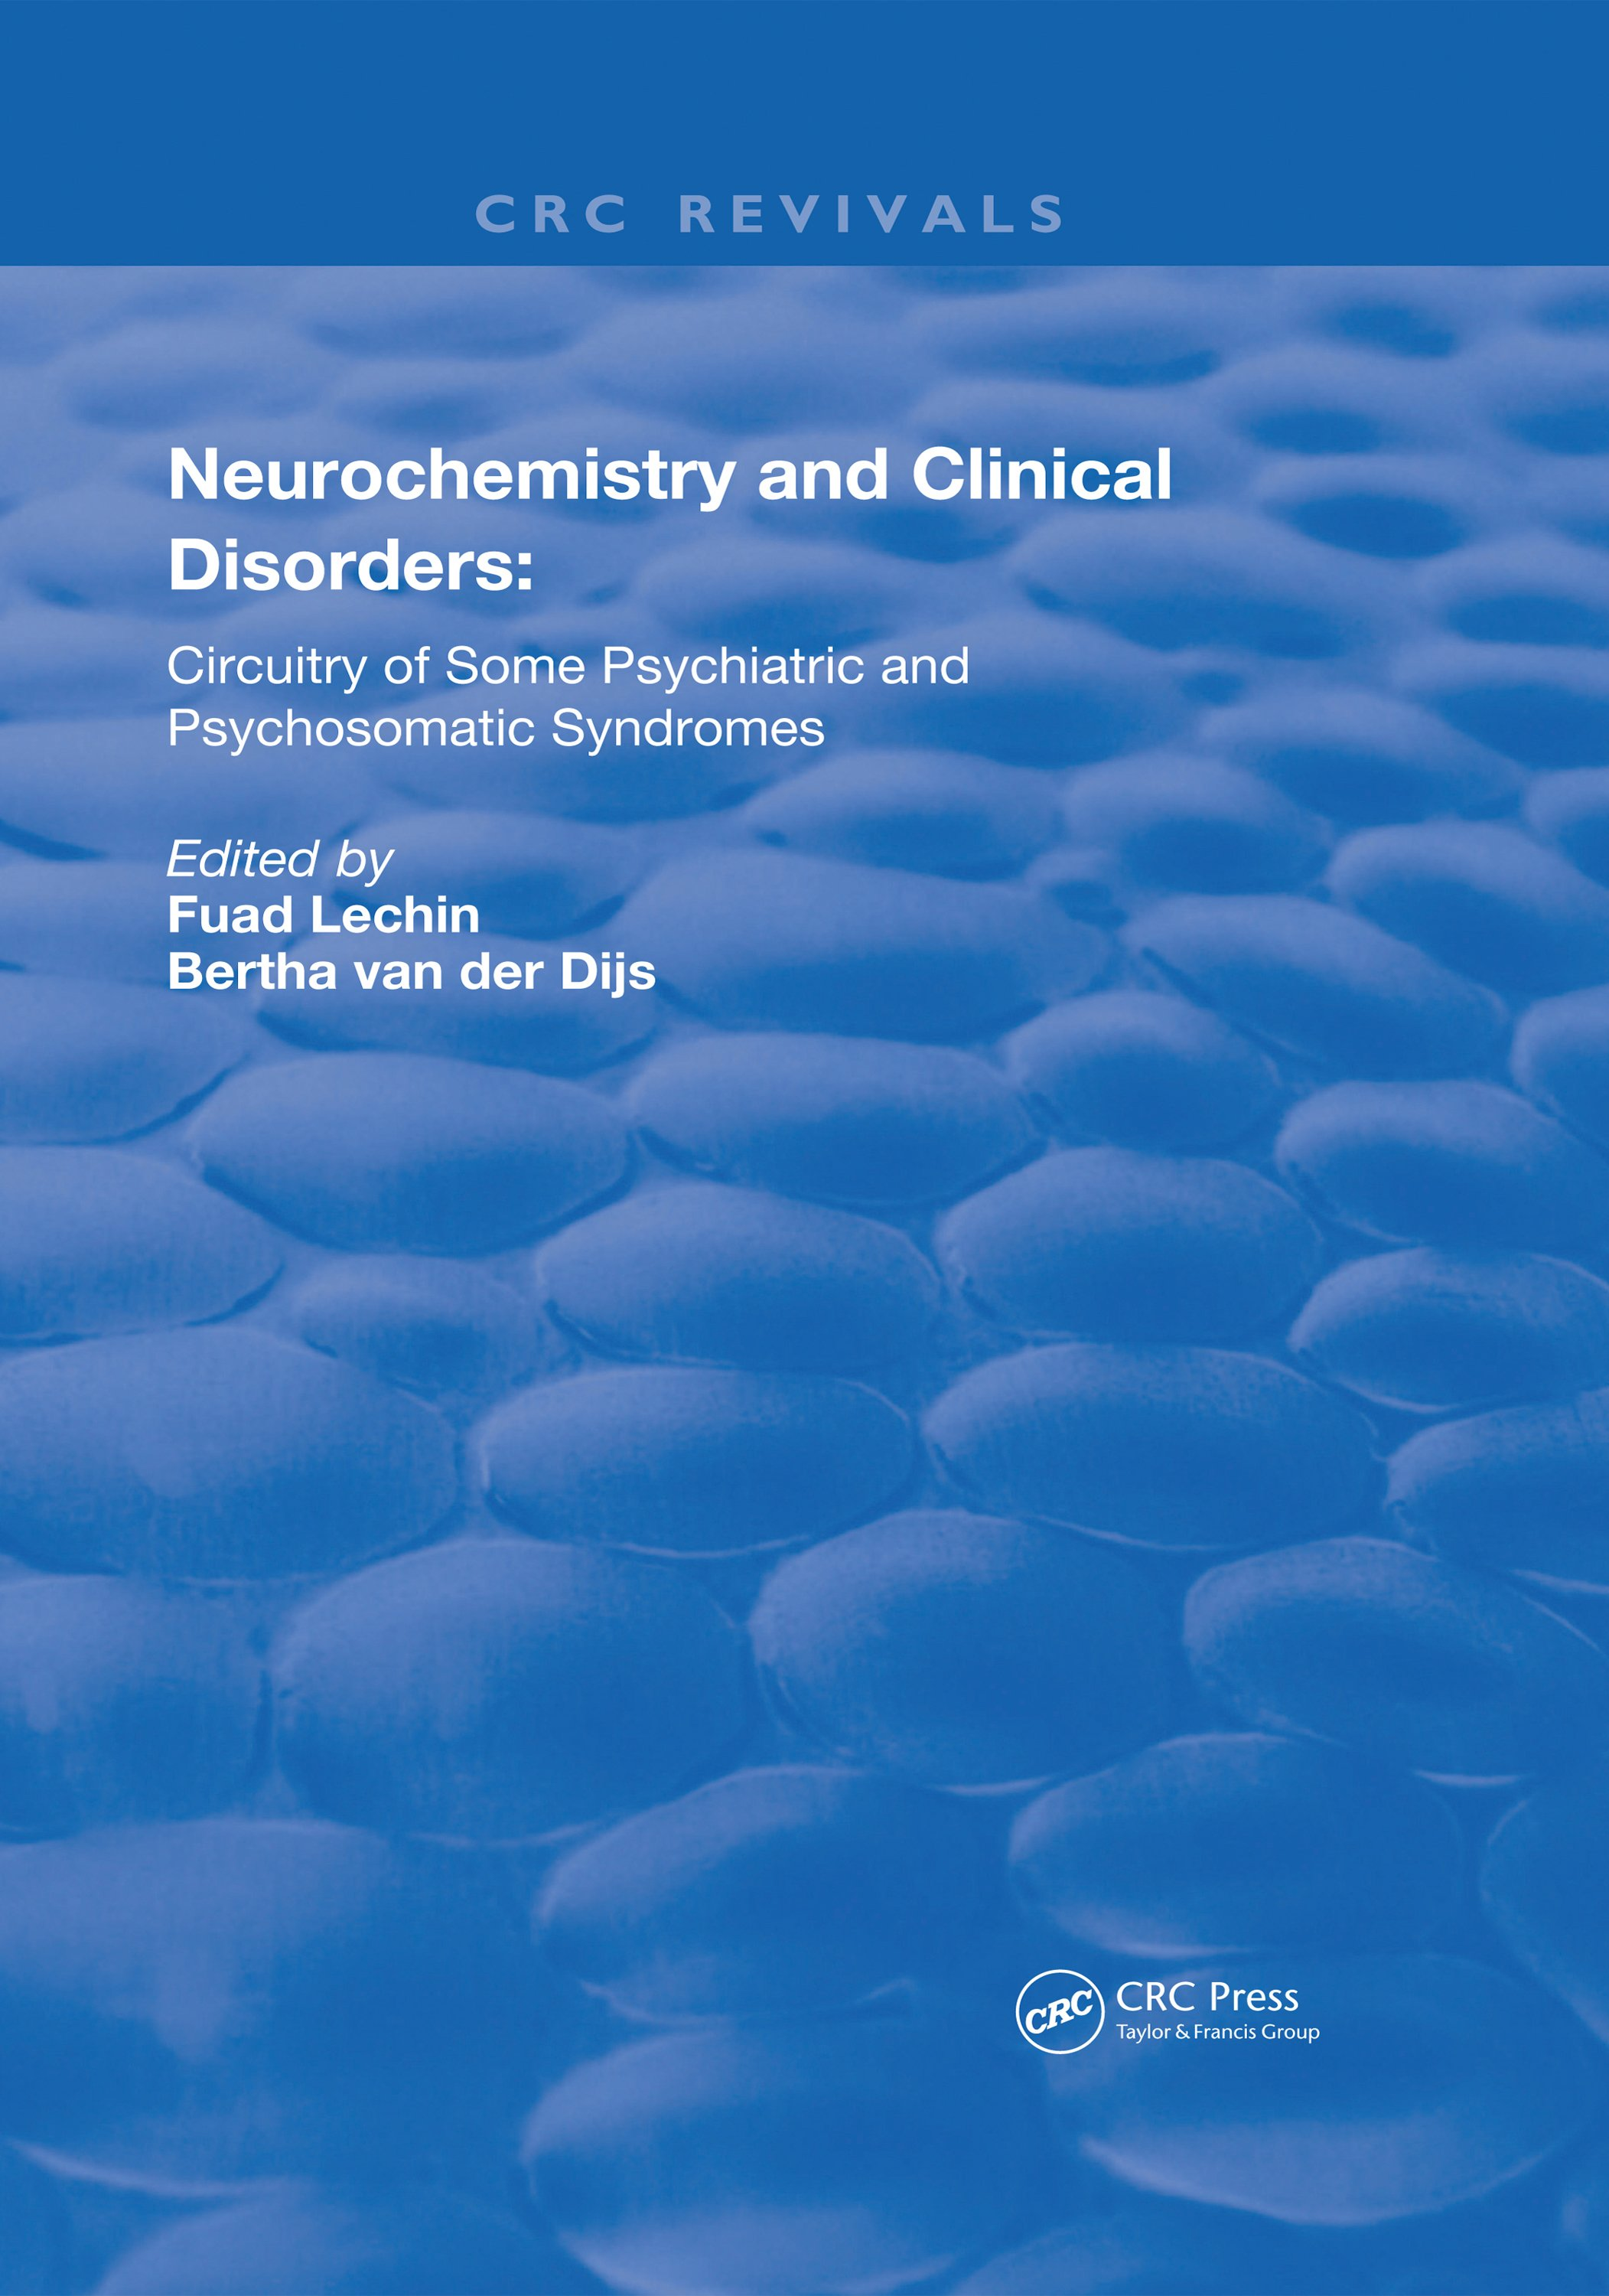 Neurochemistry and Clinical Disorders: Circuitry of Some Psychiatric and Psychosomatic Syndromes